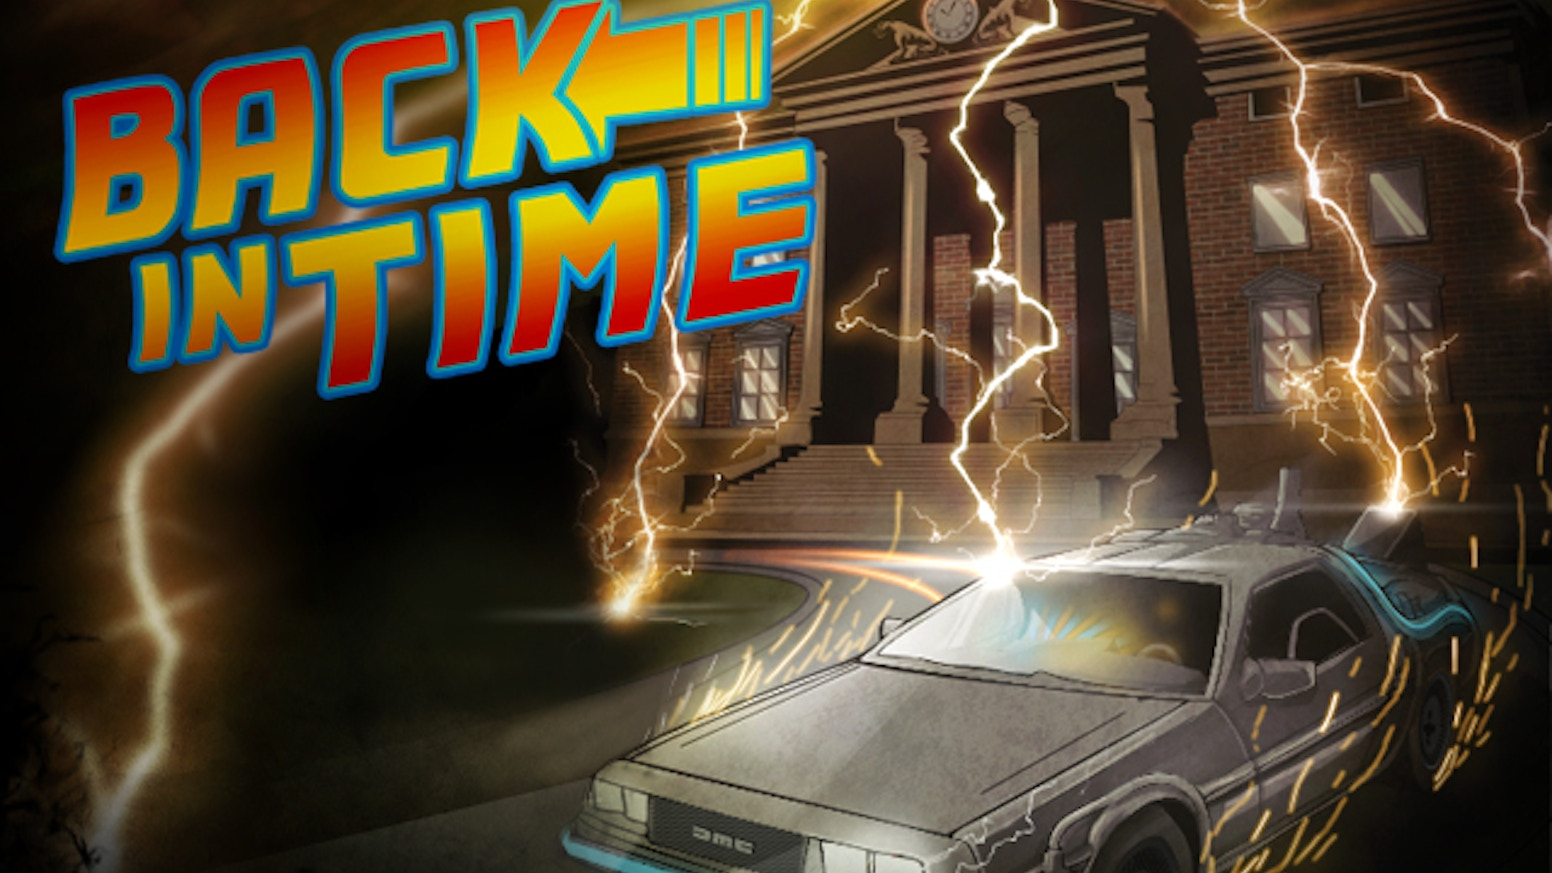 A film about the cultural impact of Back to the Future—30 years later